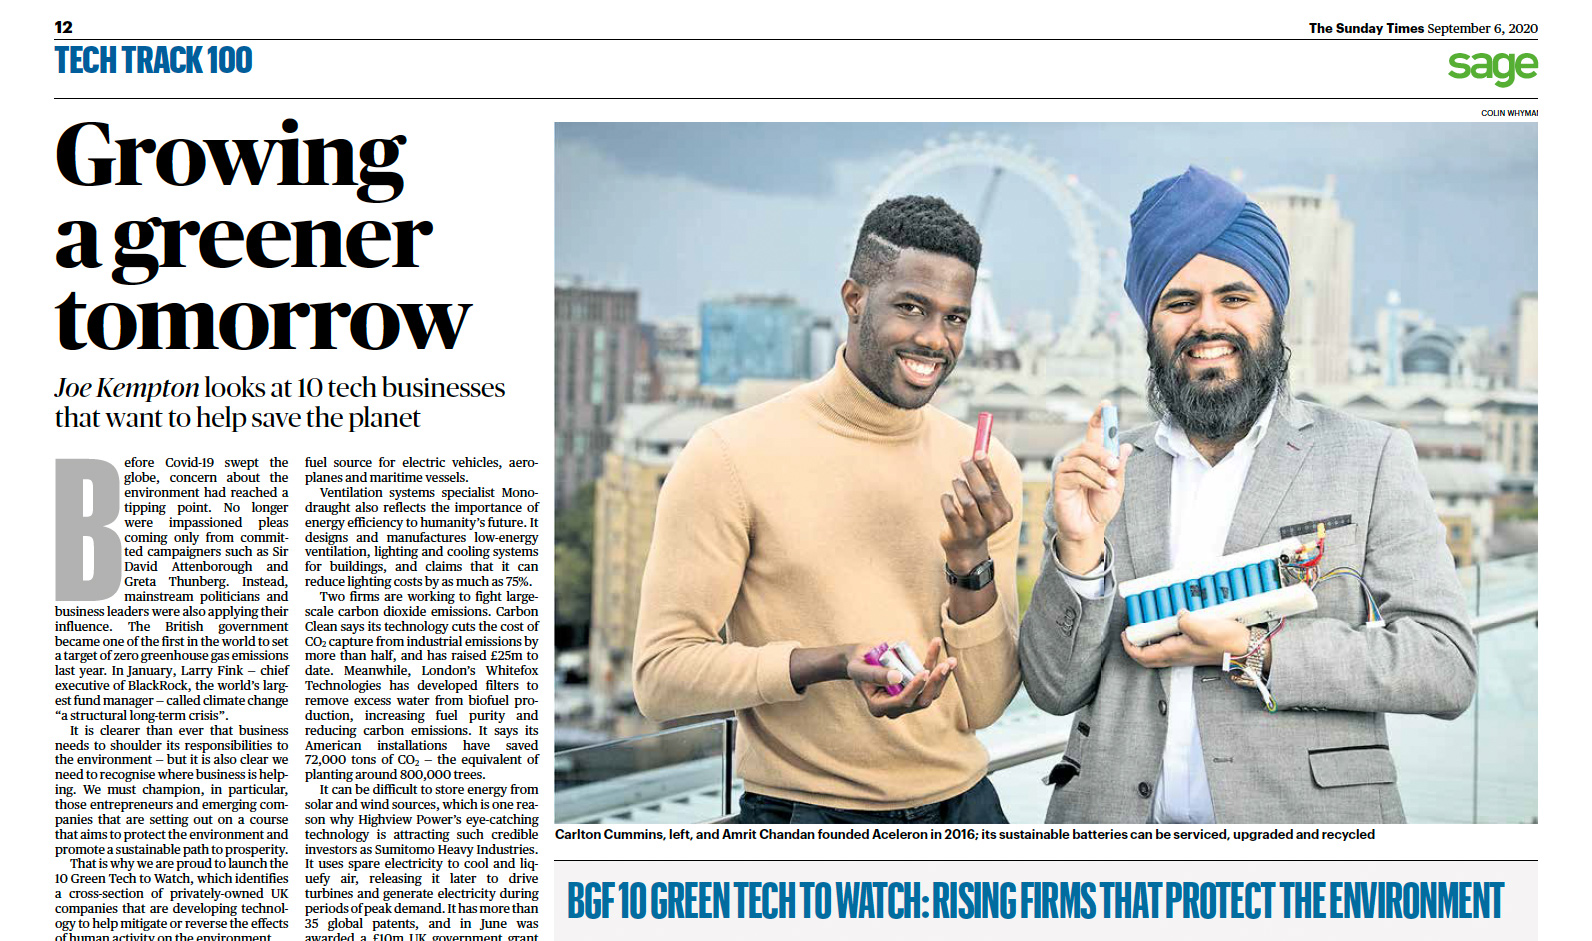 Sunday Times BGF 10 Green Tech to Watch 2020